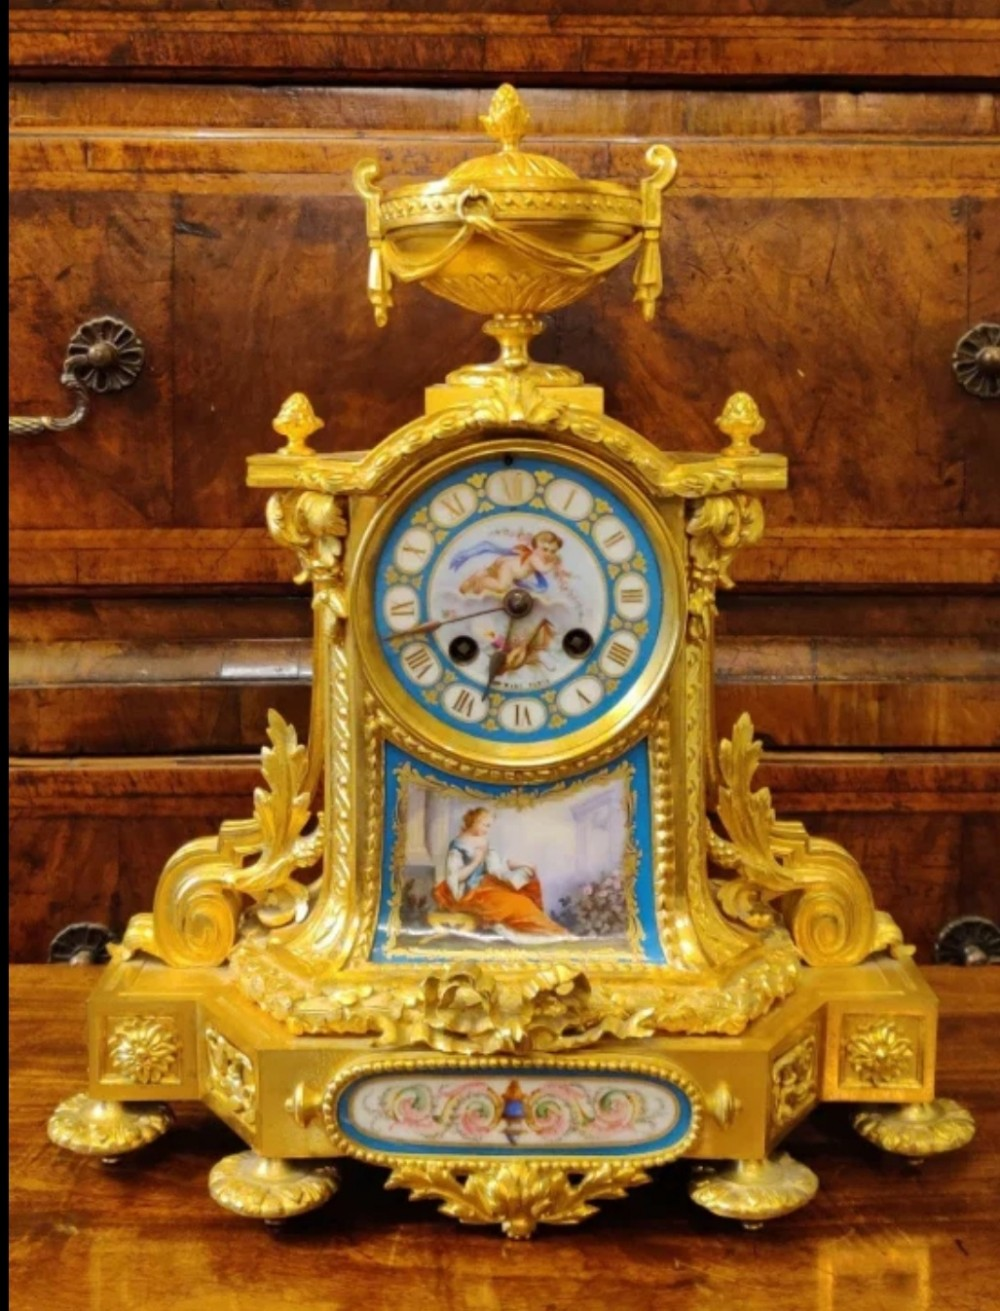 french gilt bronze ormolu clock with porcelain plaques dial